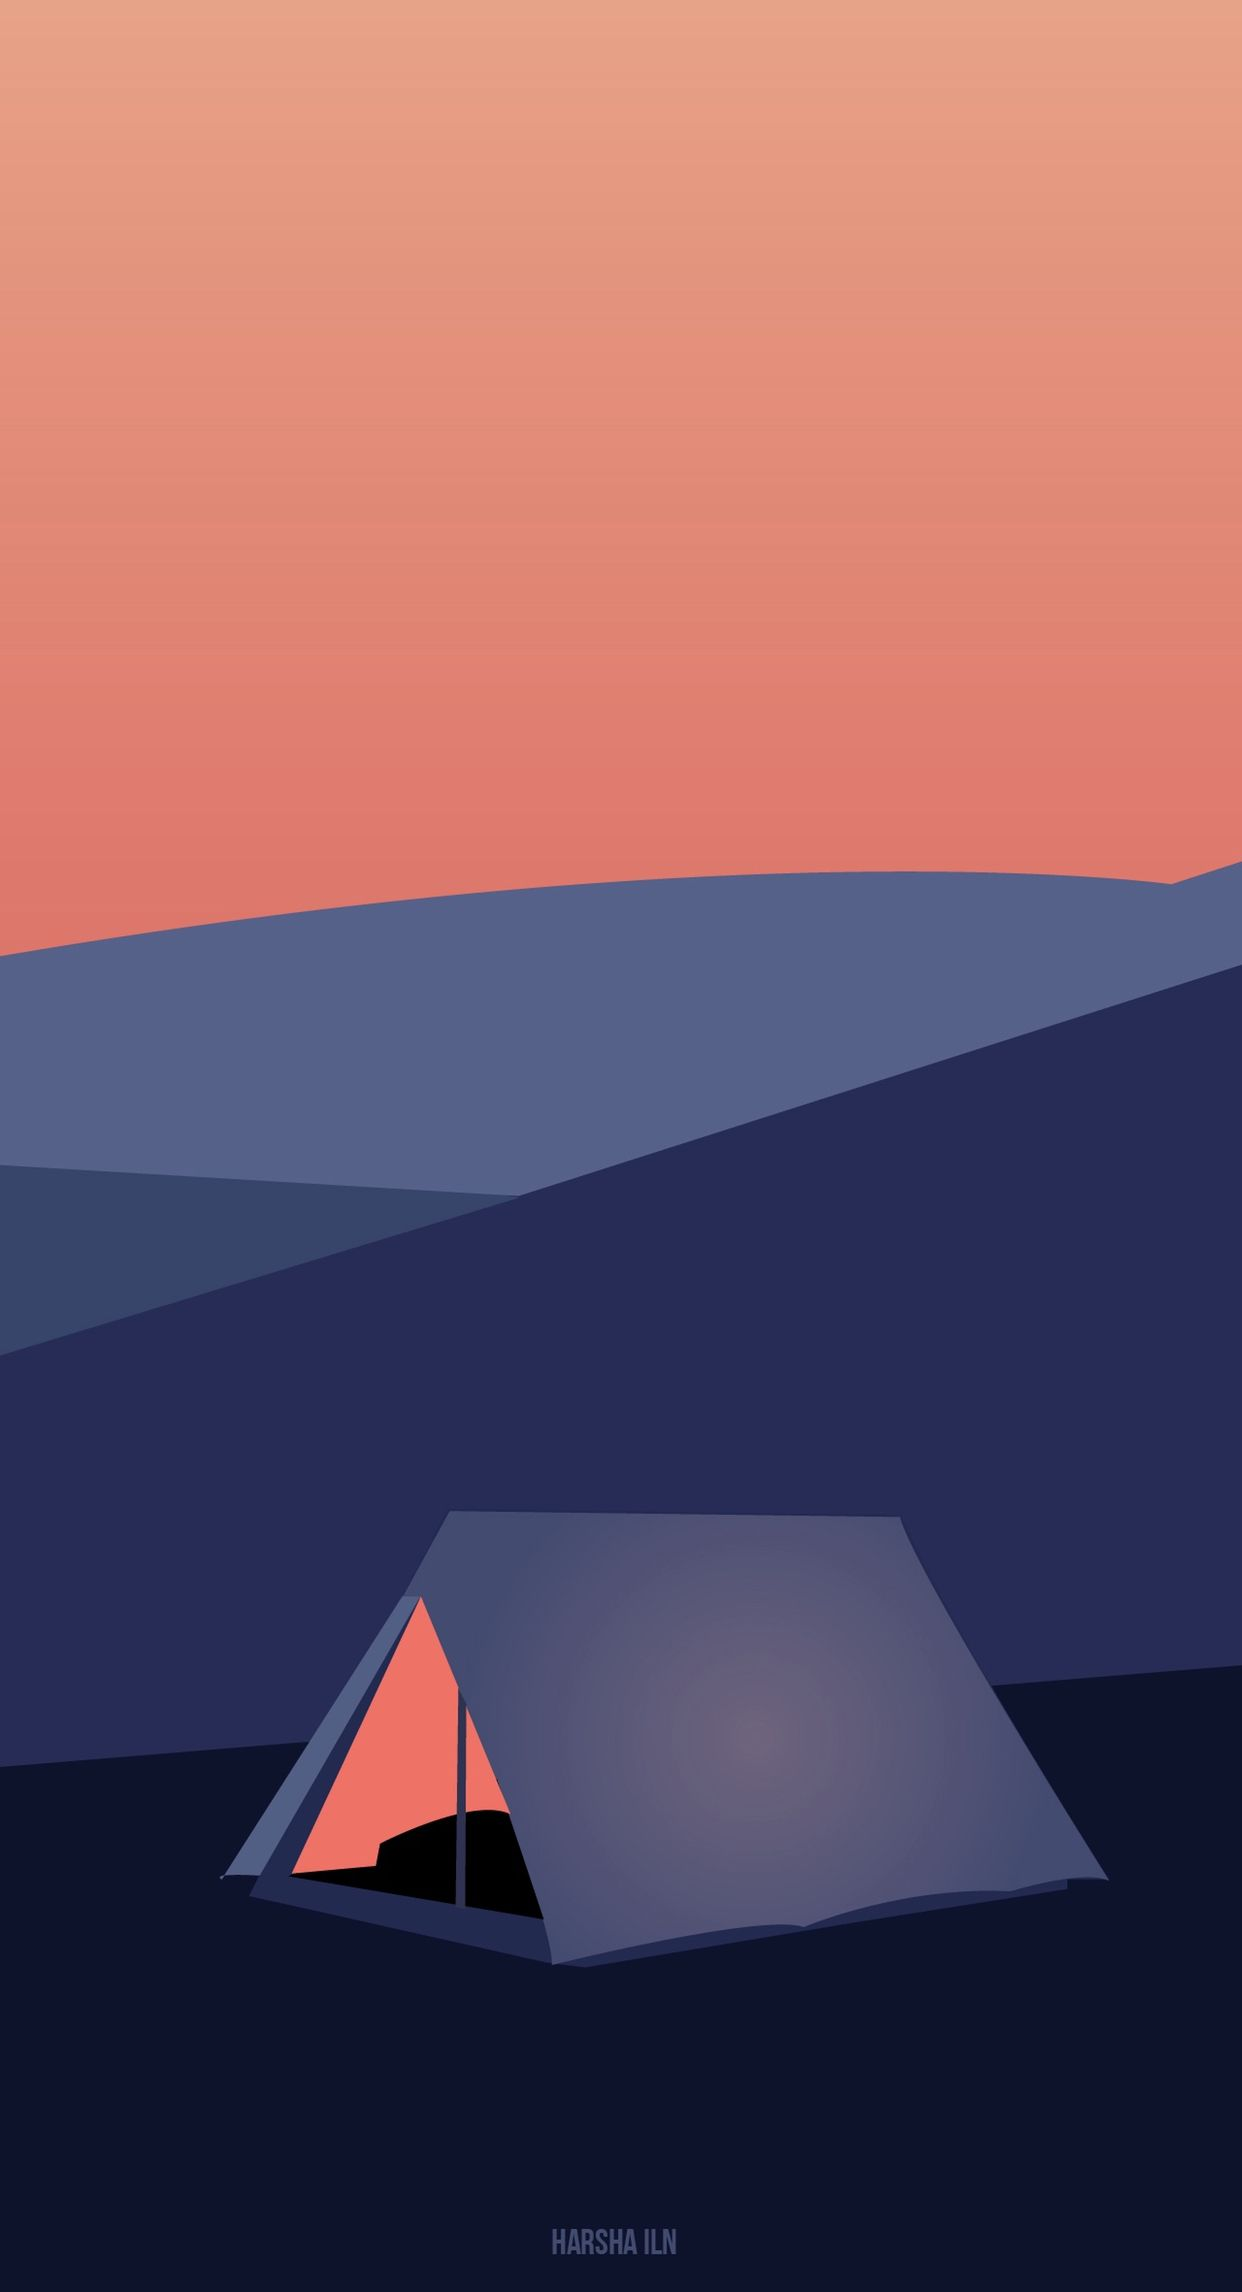 Minimalist Camping Wallpapers Top Free Minimalist Camping Backgrounds Wallpaperaccess